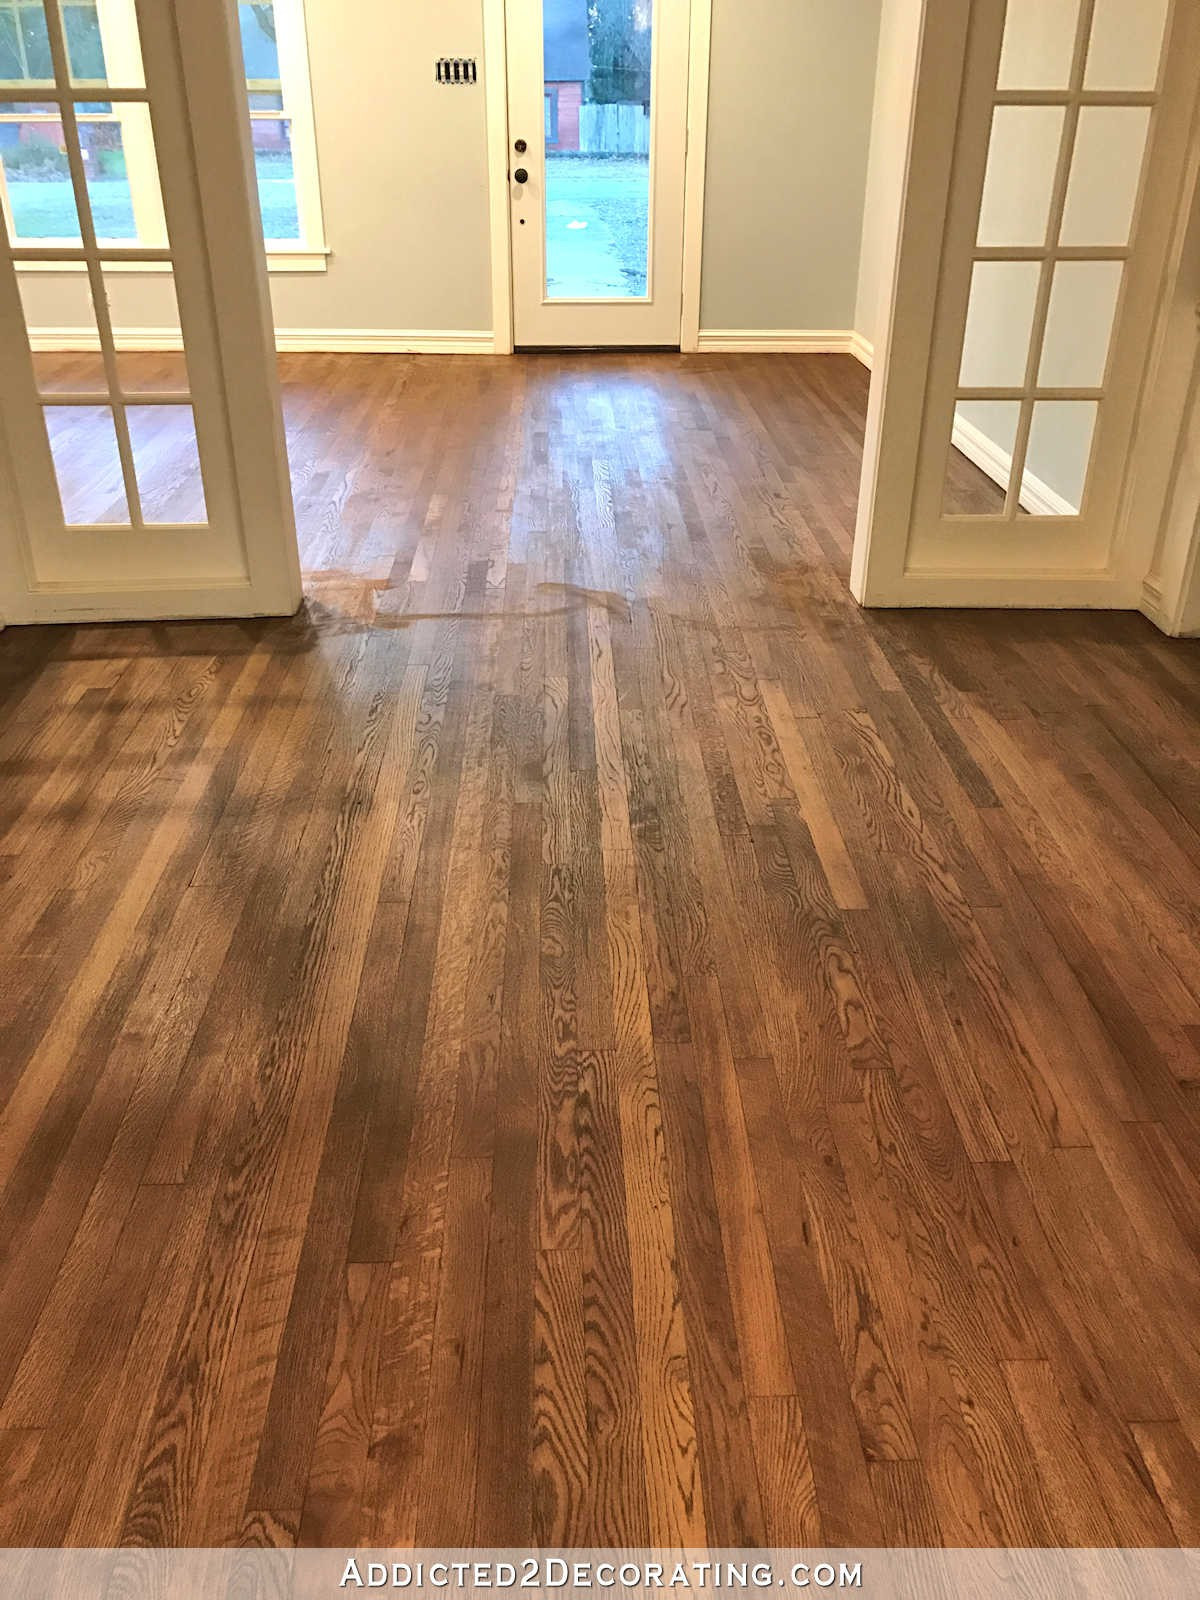 refinishing hardwood floors yourself of 14 luxury diy refinish hardwood floors photograph dizpos com throughout diy refinish hardwood floors best of adventures in staining my red oak hardwood floors products